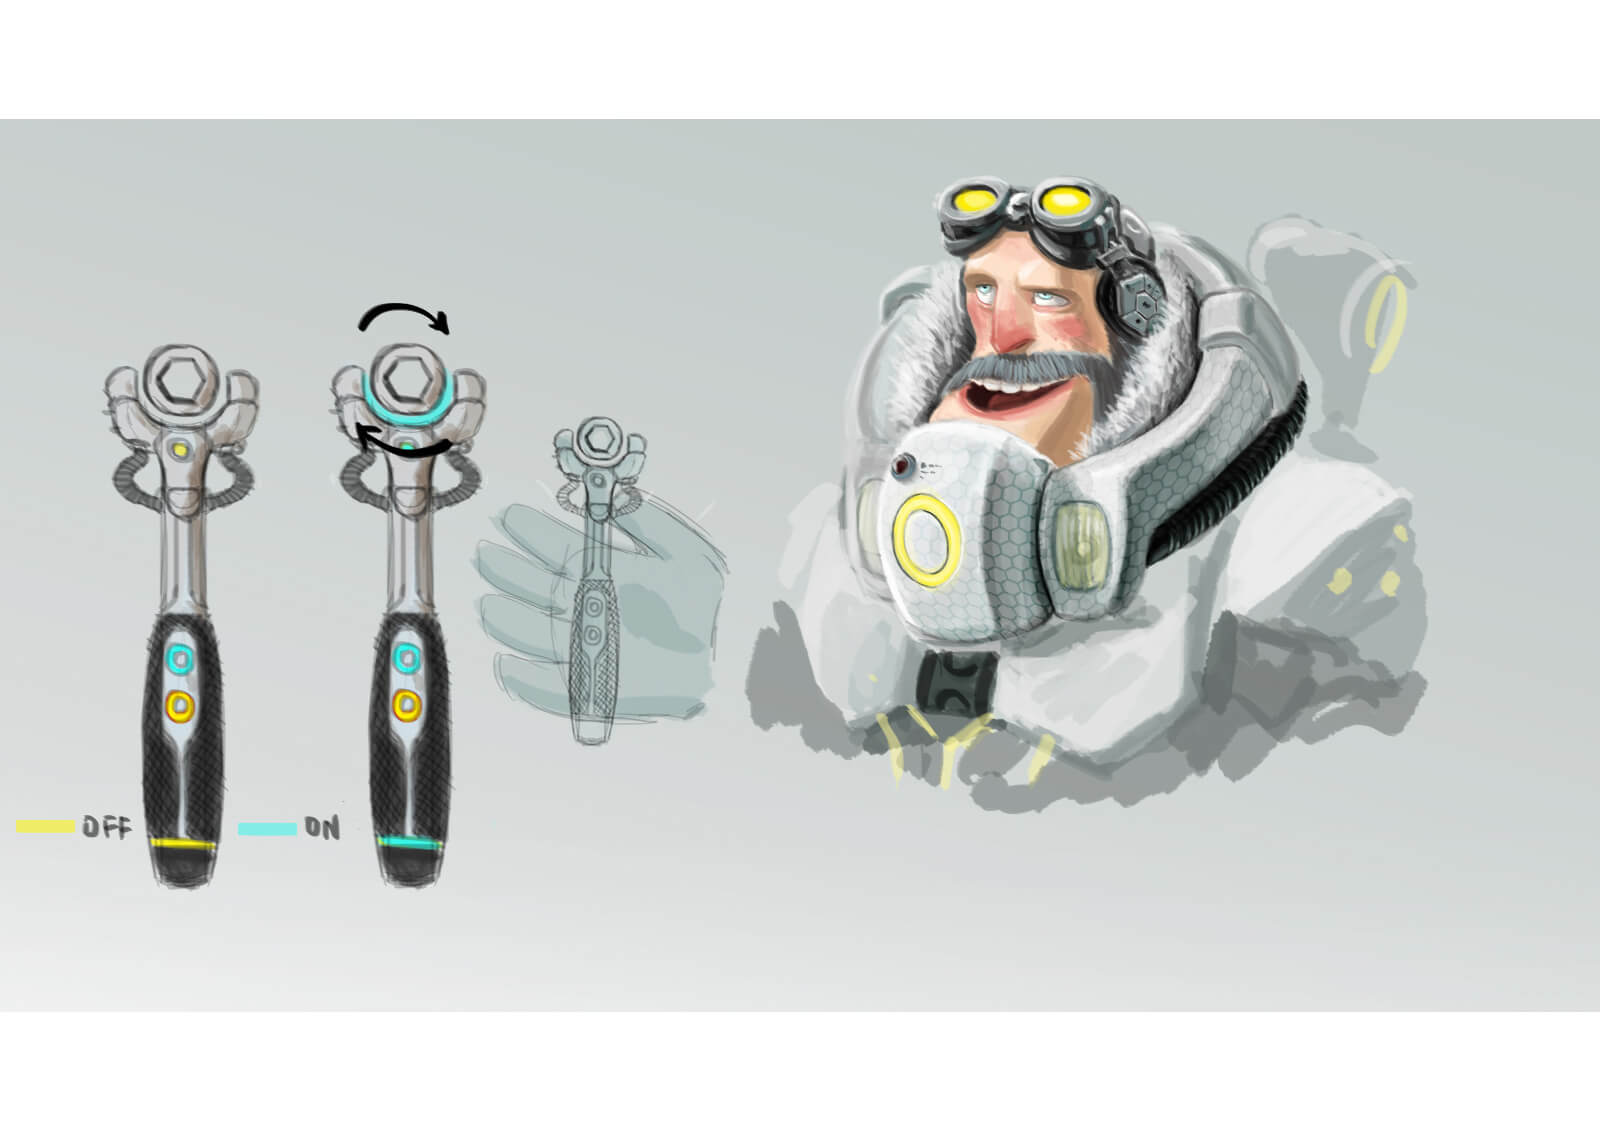 Detailed color sketch of a futuristic wrench accented with aqua and yellow lights, held by a bearded man in white armor